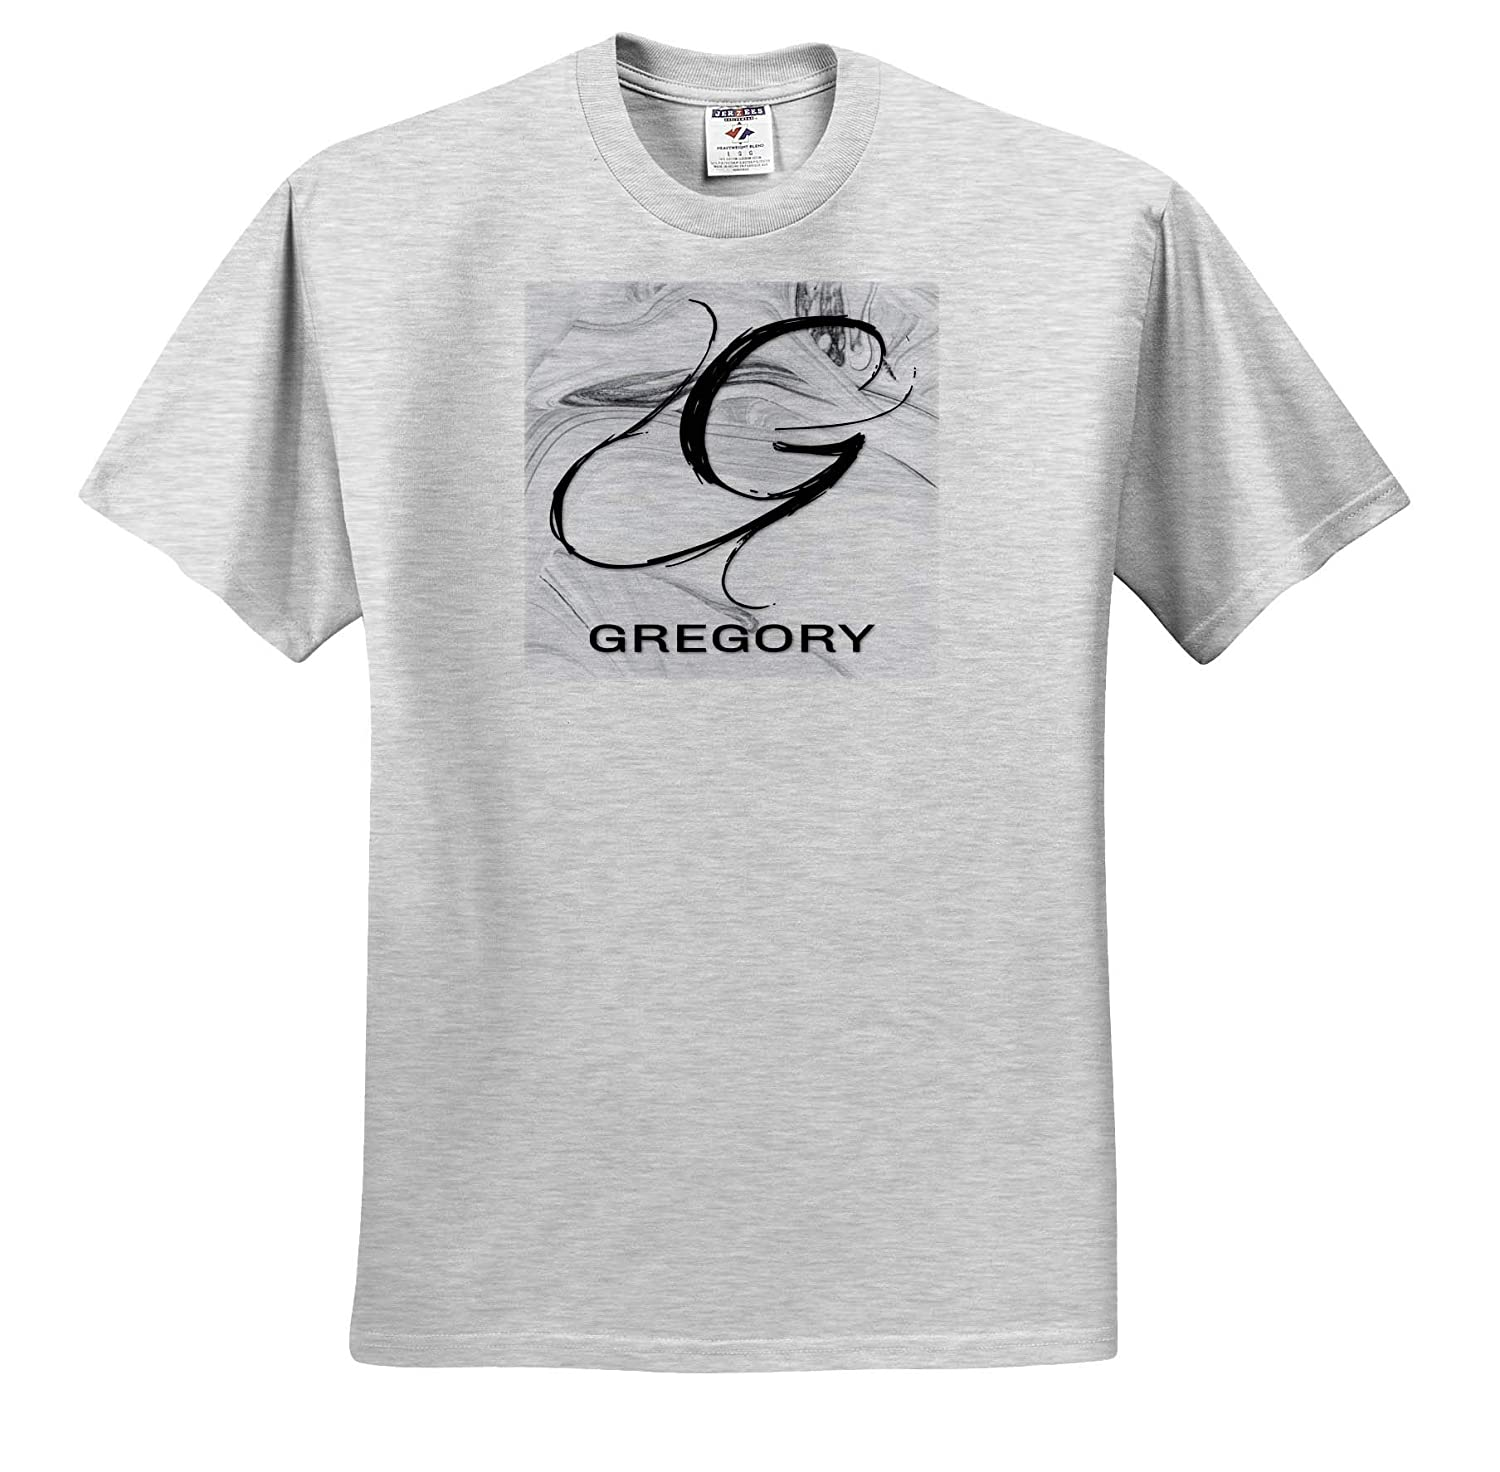 3dRose BrooklynMeme Monograms T-Shirts Gregory White Marble Monogram G